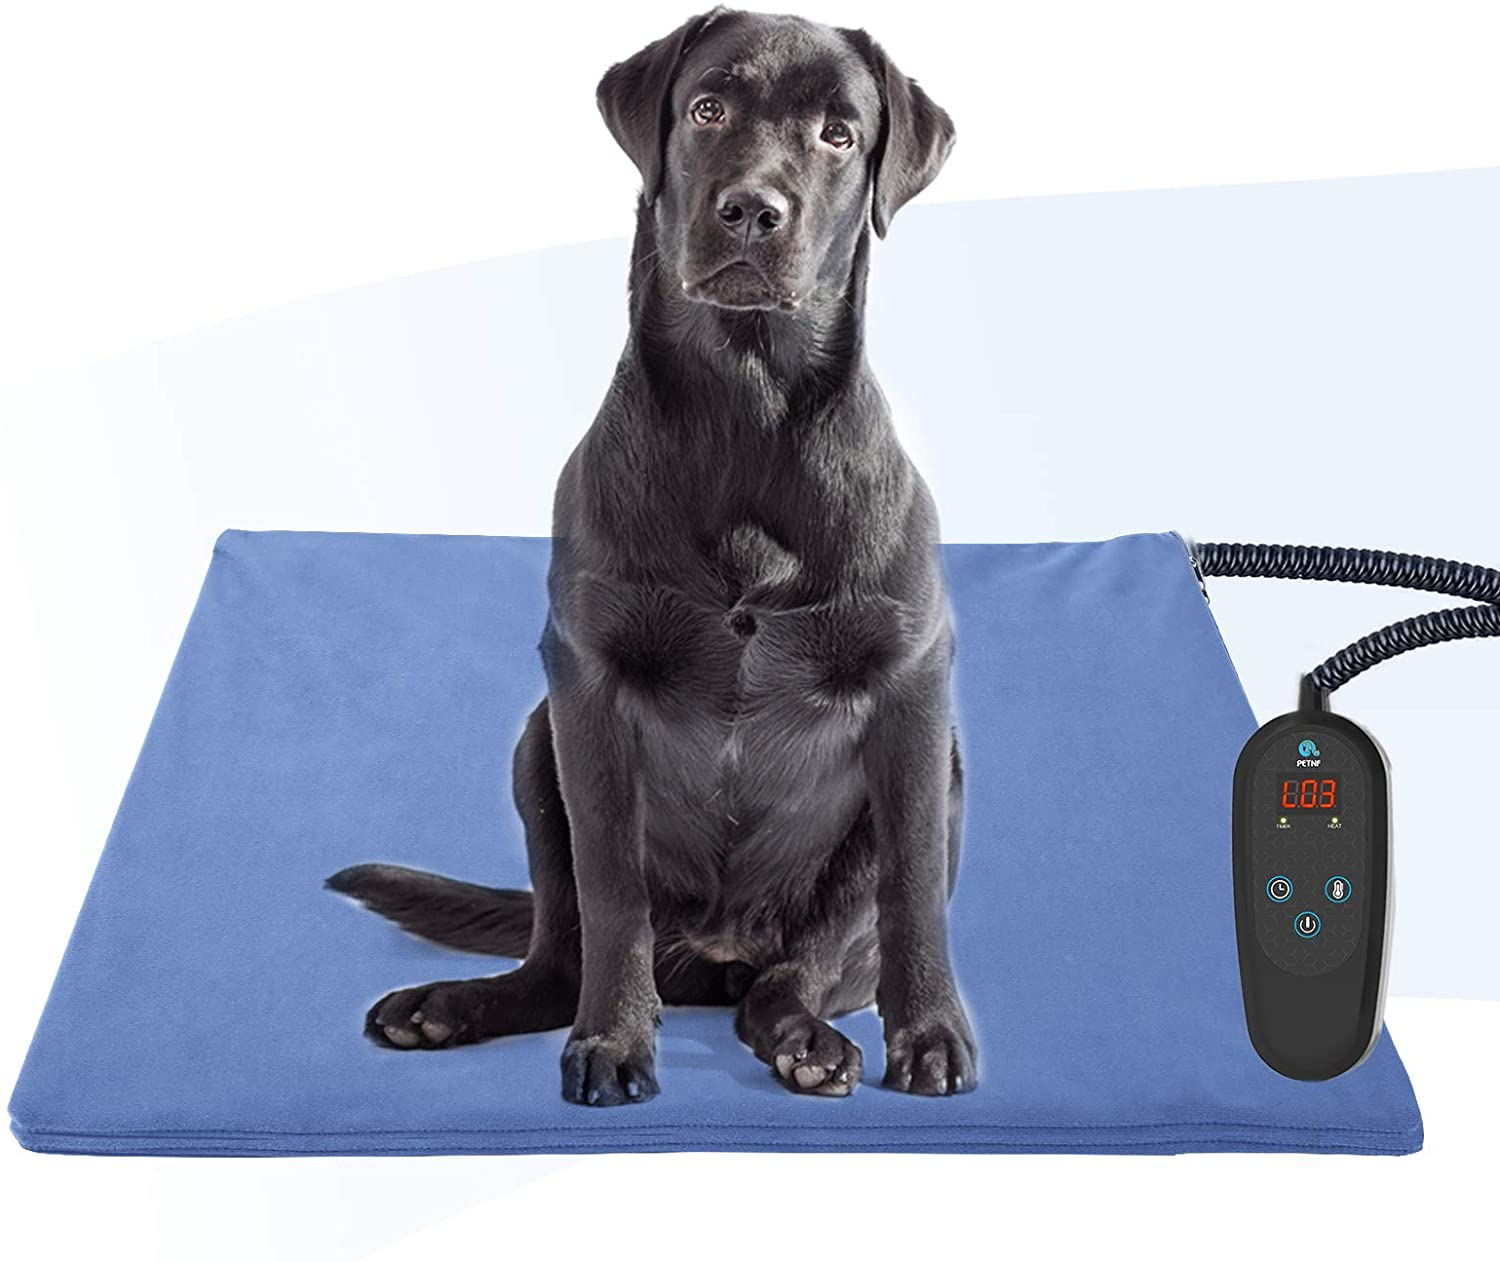 petnf upgraded heating pad for dog with arthritis